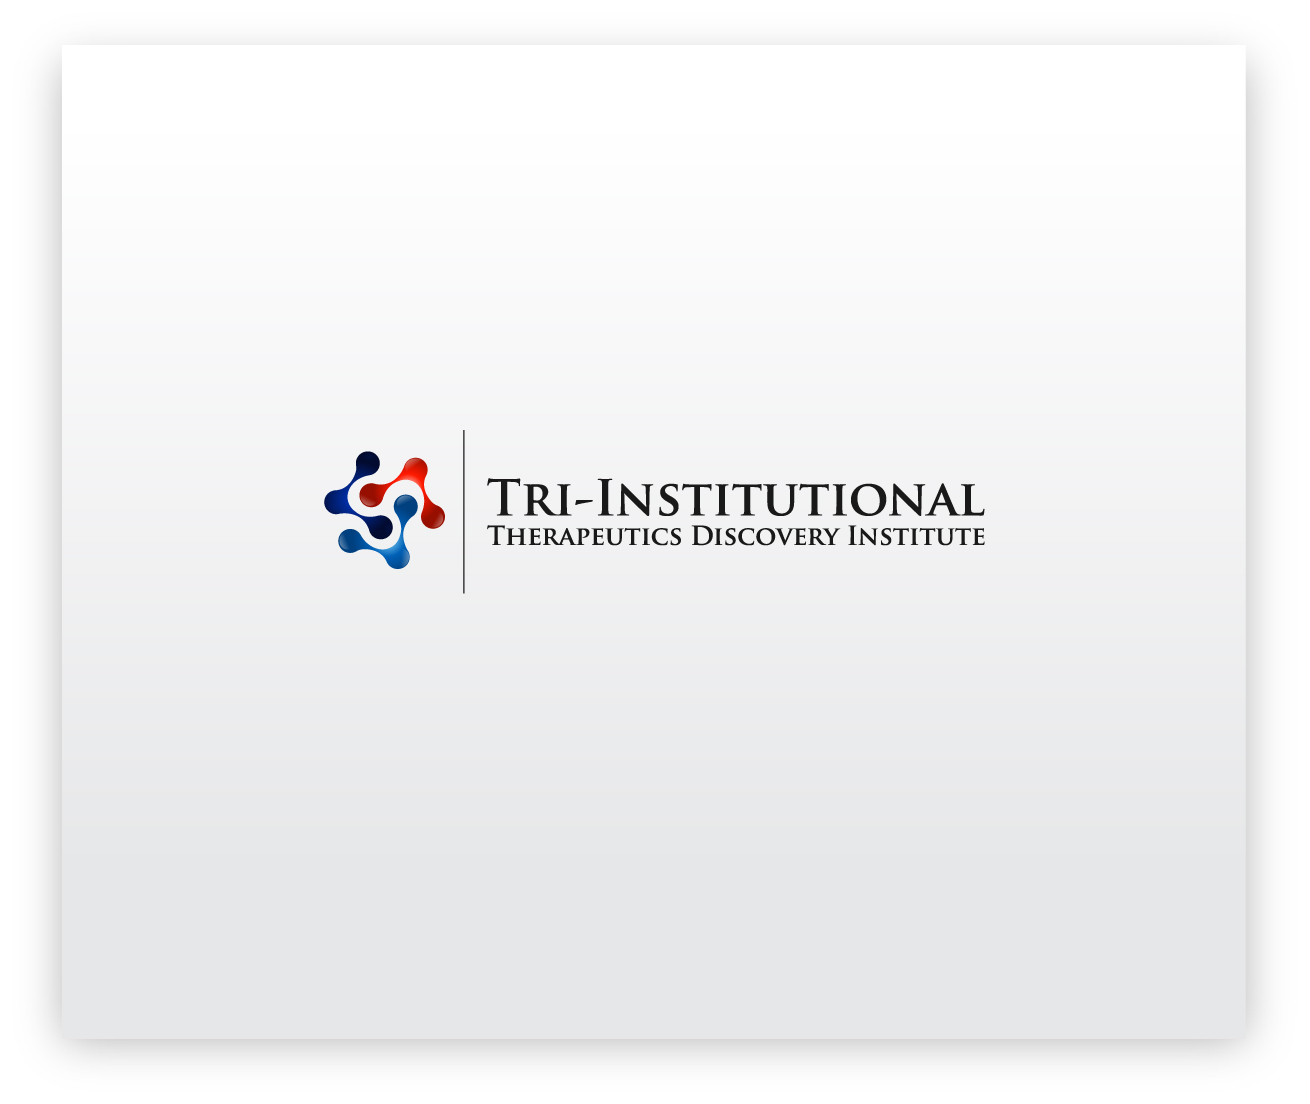 Logo Design by zoiDesign - Entry No. 222 in the Logo Design Contest Inspiring Logo Design for Tri-Institutional Therapeutics Discovery Institute.